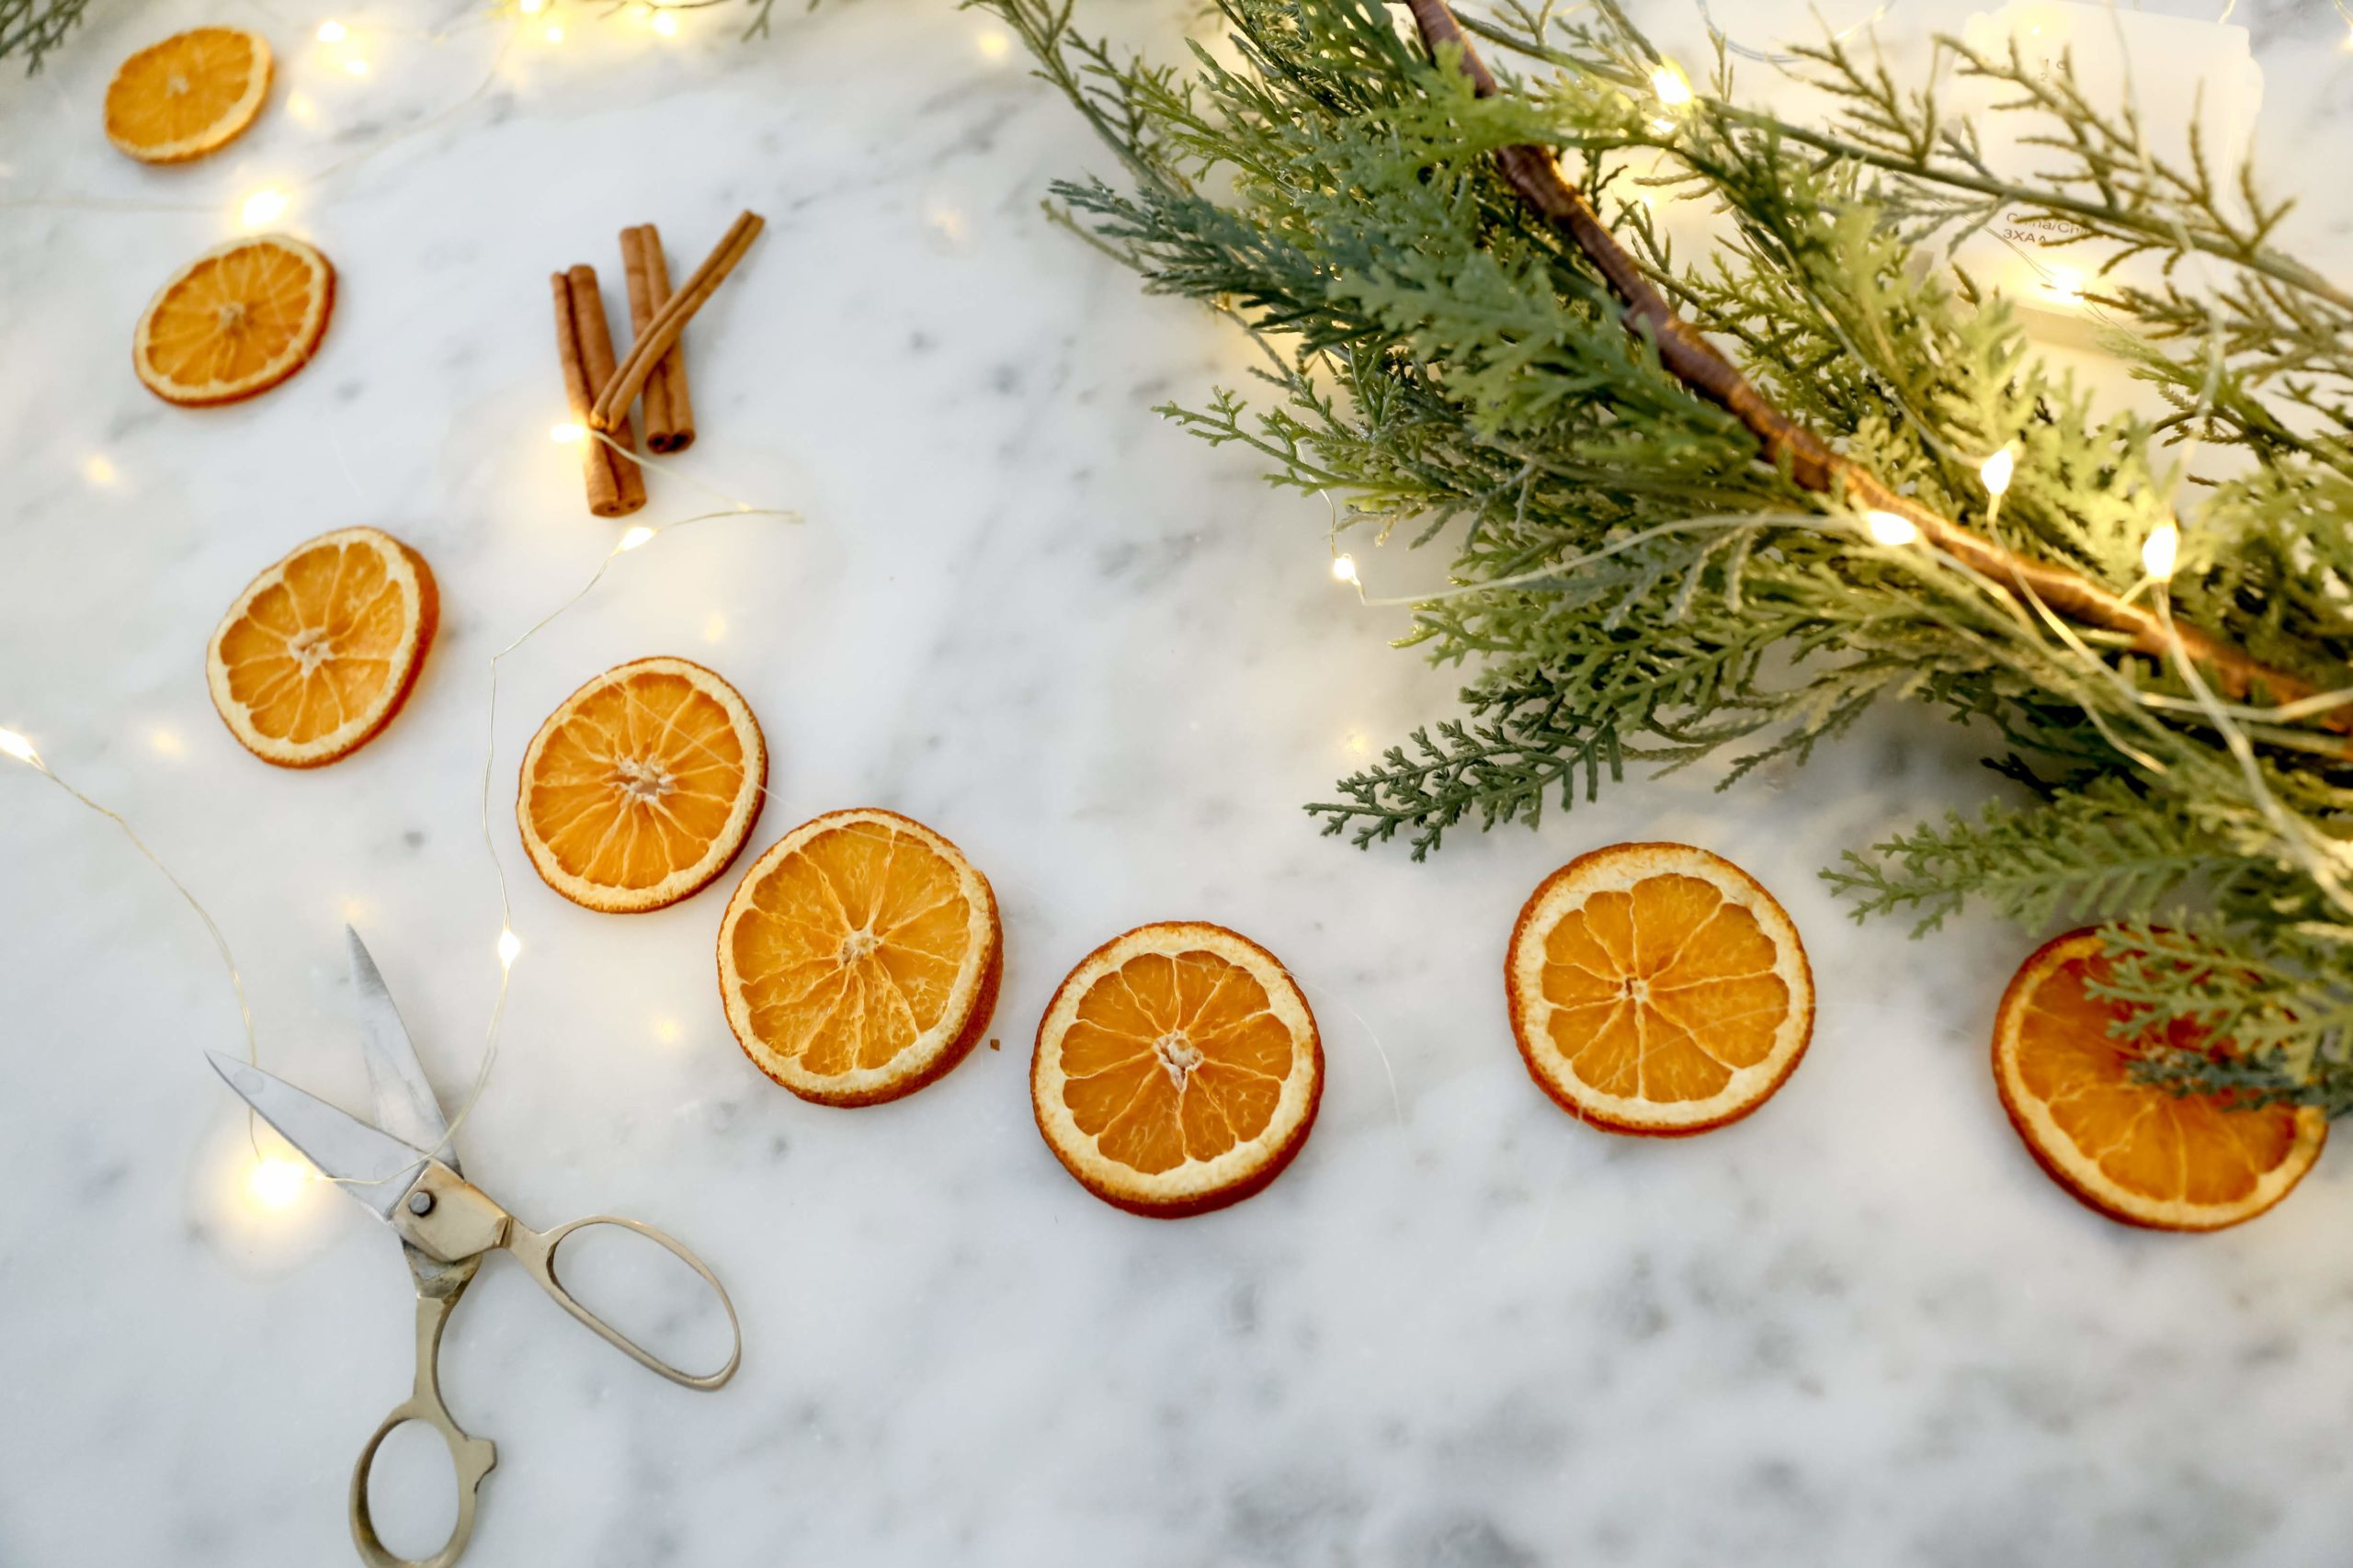 dried orange garland on a marble countertop